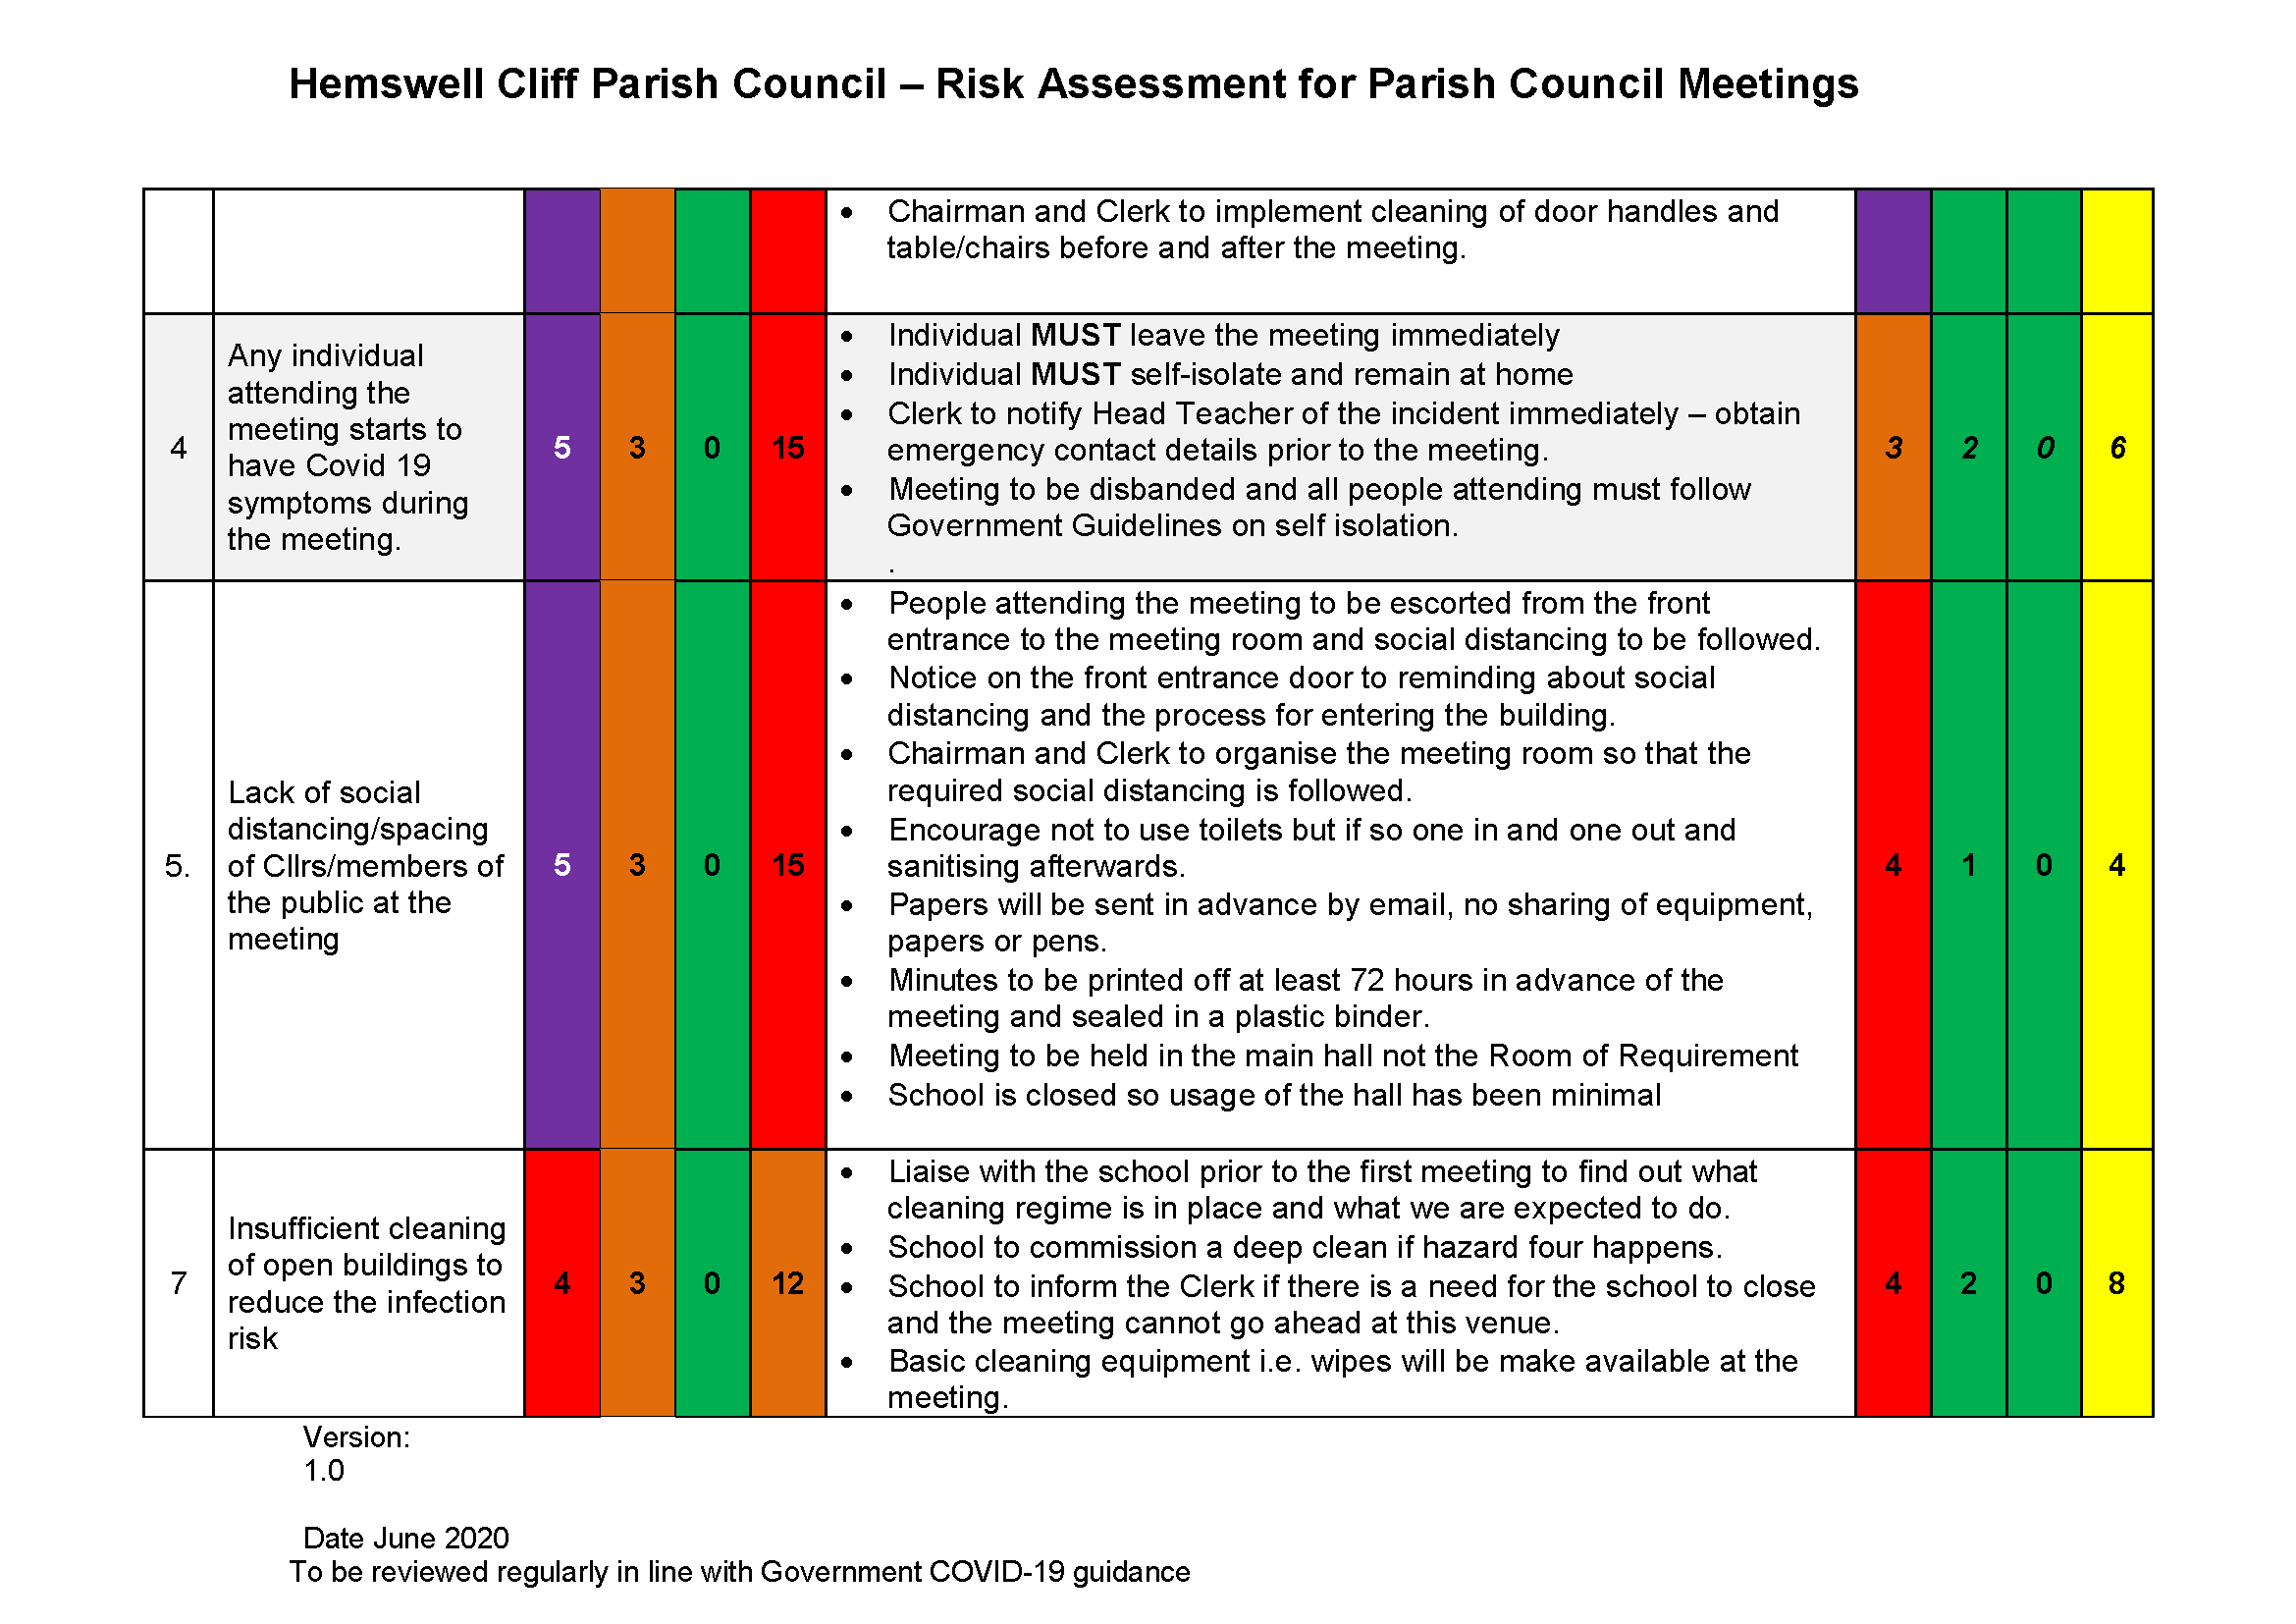 HCPC_risk_assessment_meetings_Page_3.png